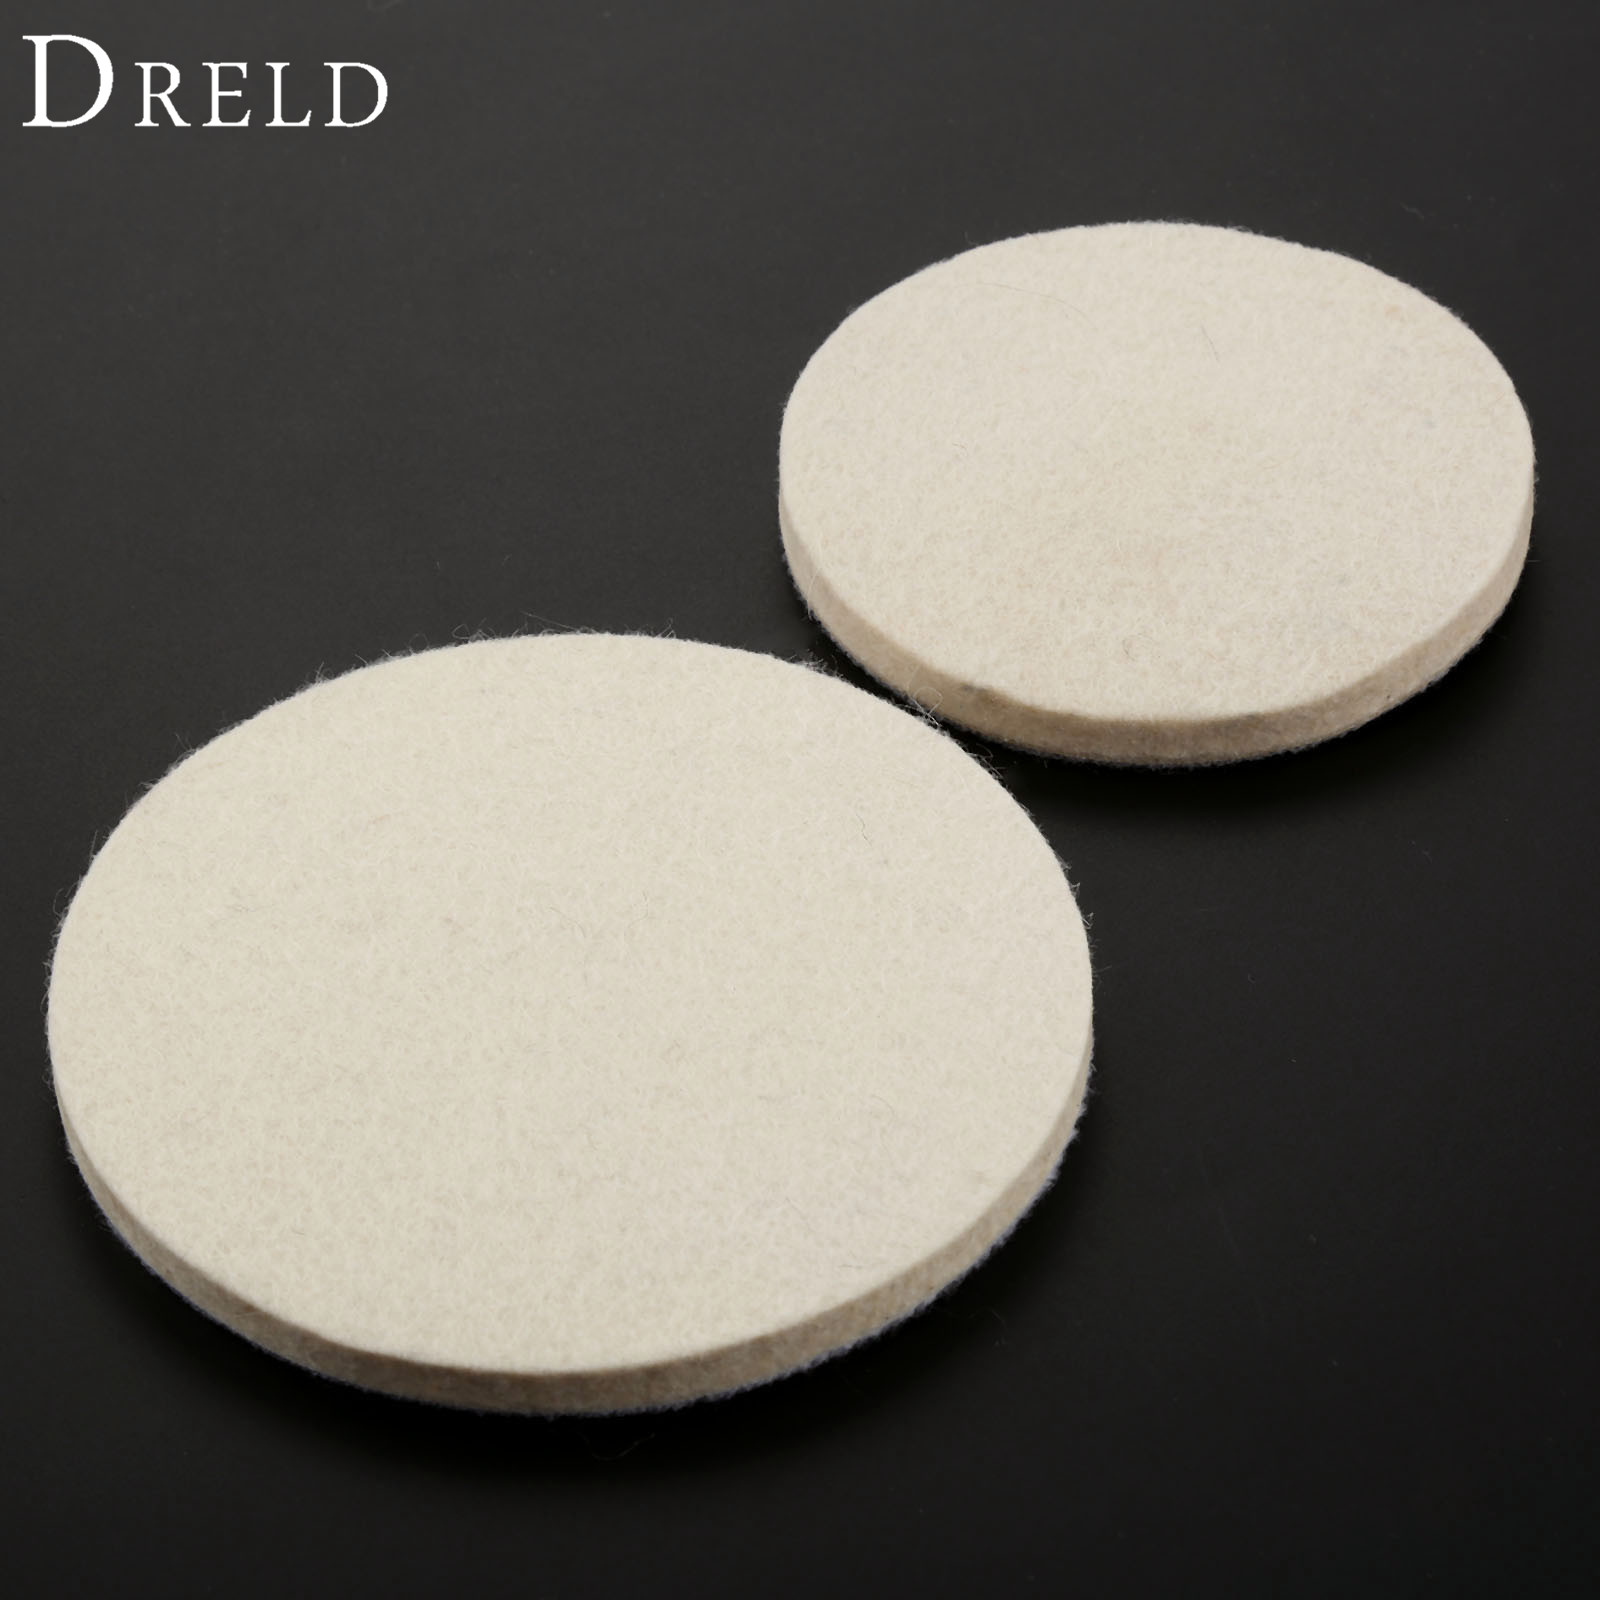 DRELD 1Pc 100mm /125mm Grinding Polishing Buffing Wheel Dremel Accessories Wool Felt Polish Polisher Disc Pad for Metal Ceramic 9pcs polishing kit dome goblet cylinder mop buffing wheel compound f metal polish 38mm 50mm 60mm